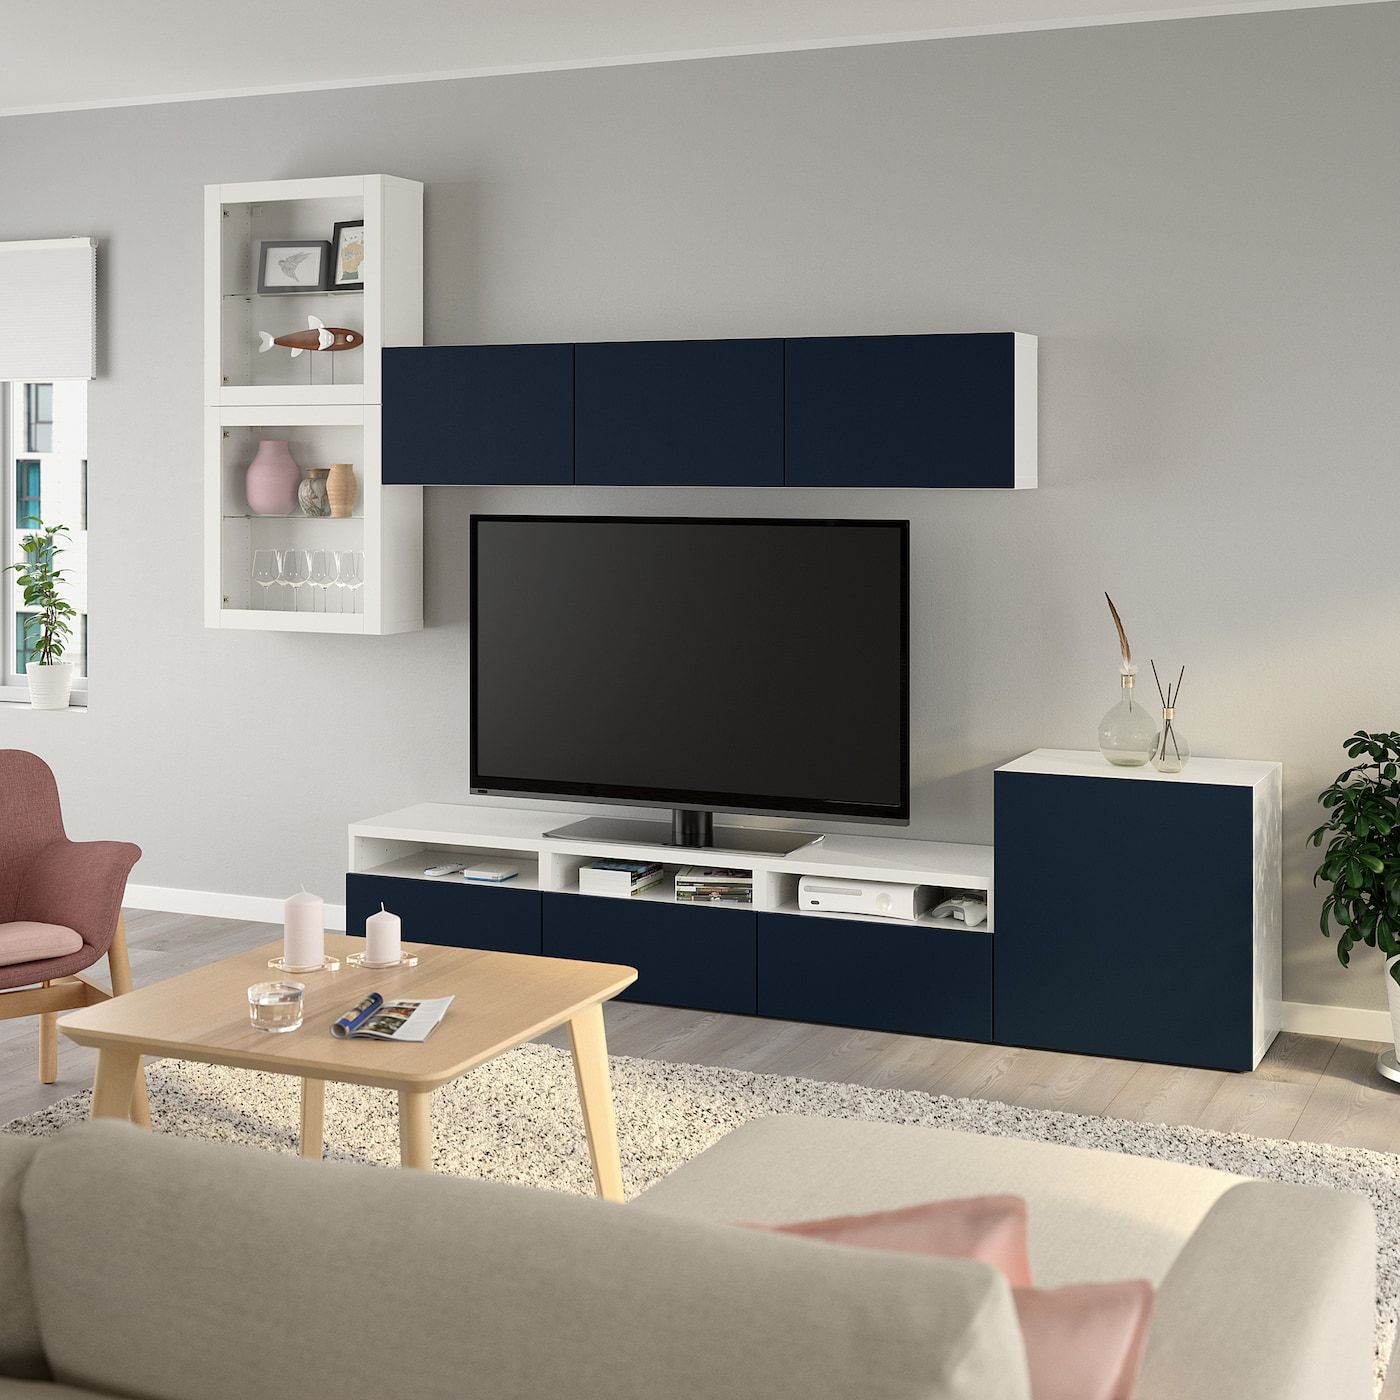 Ikea BestÅ Tv Storage Combination Glass Doors White Notviken Blue Aufbewahrung Wohnzimmer Wohnzimmerschränke Blaue Wohnzimmer